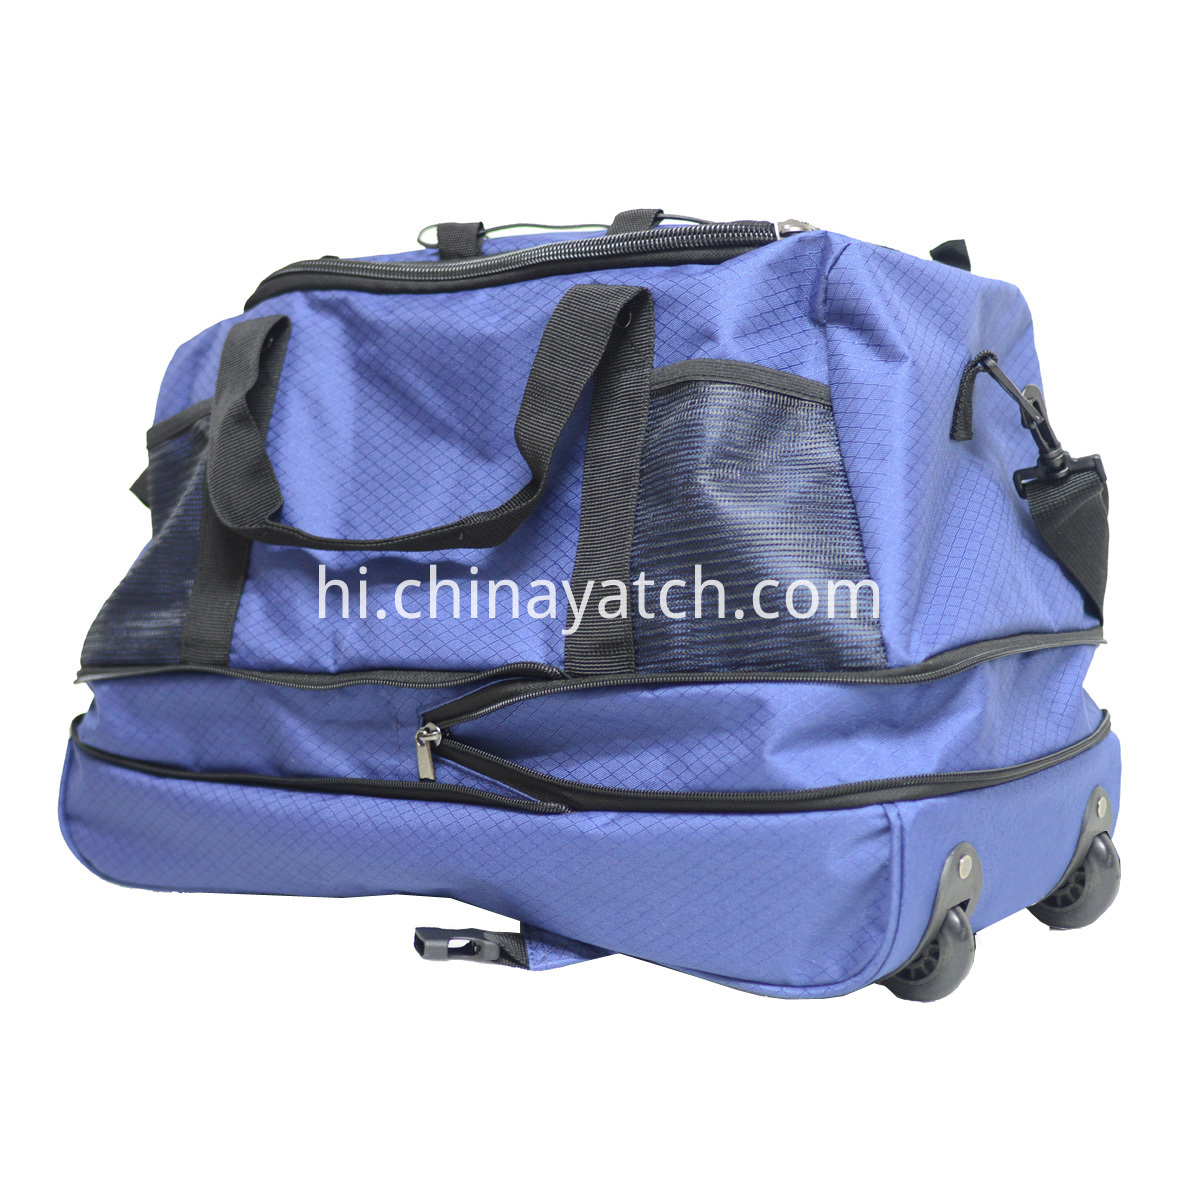 Multi-function foldable Duffle Bag with Strap